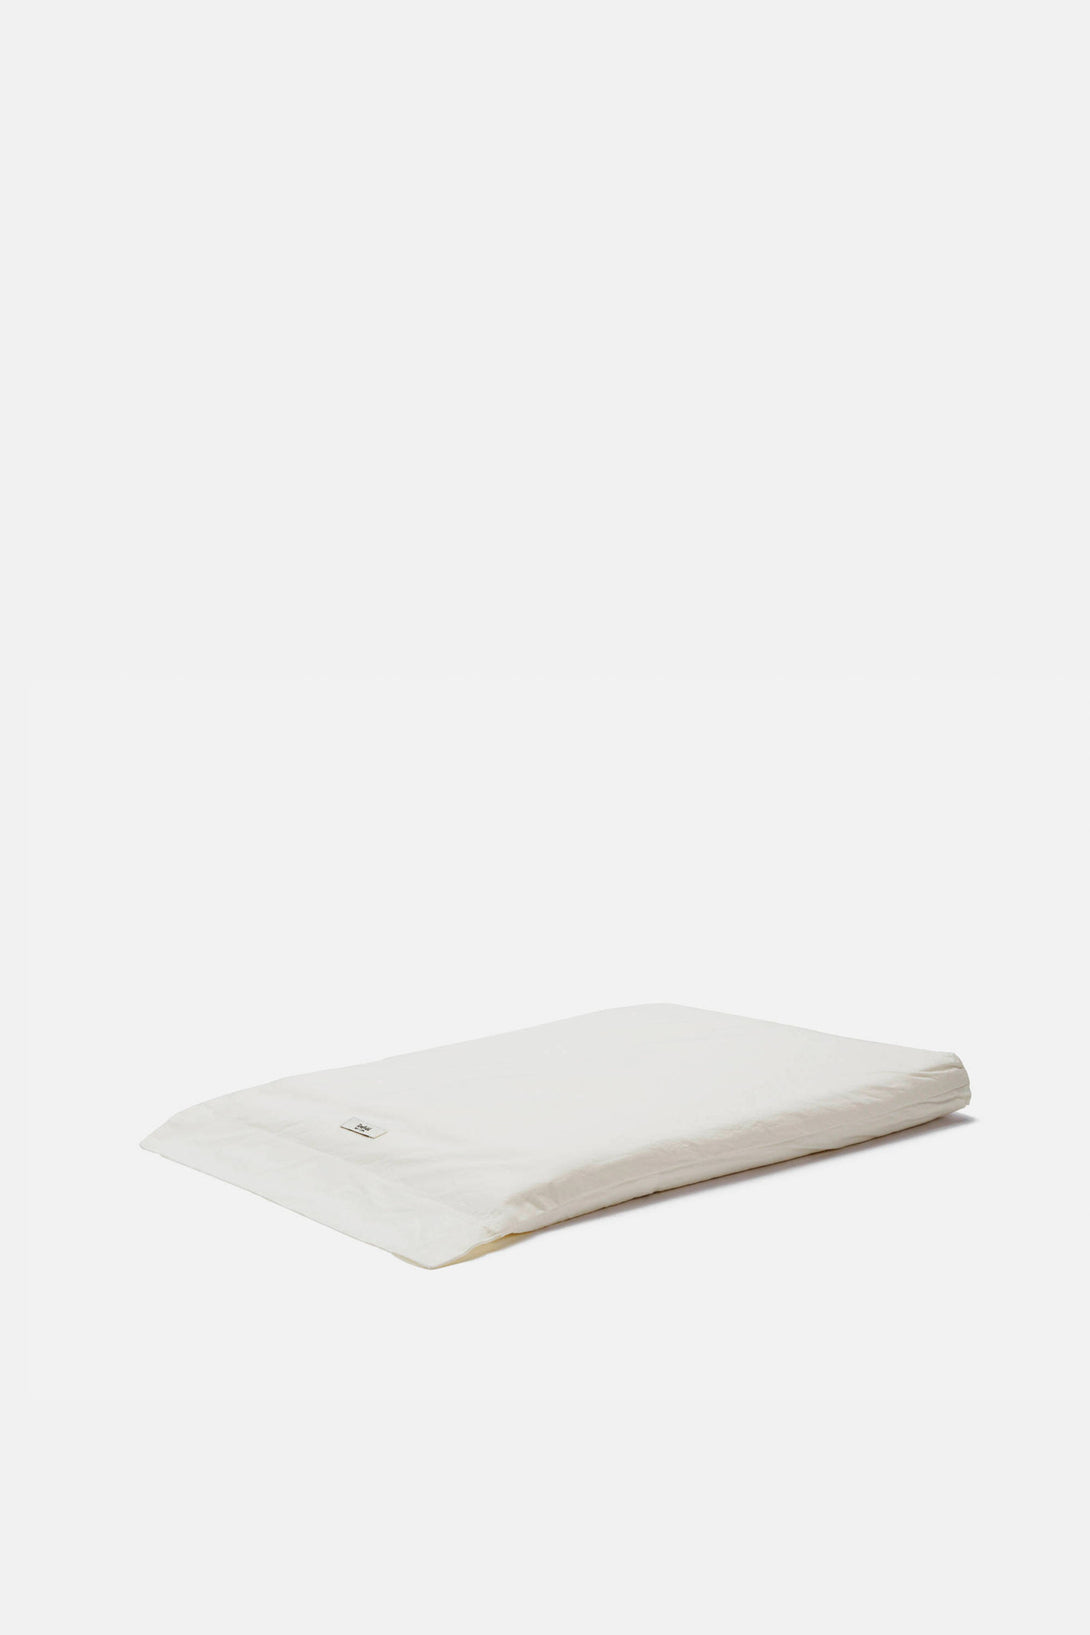 Washed Percale Sheeting - King Fitted Sheet